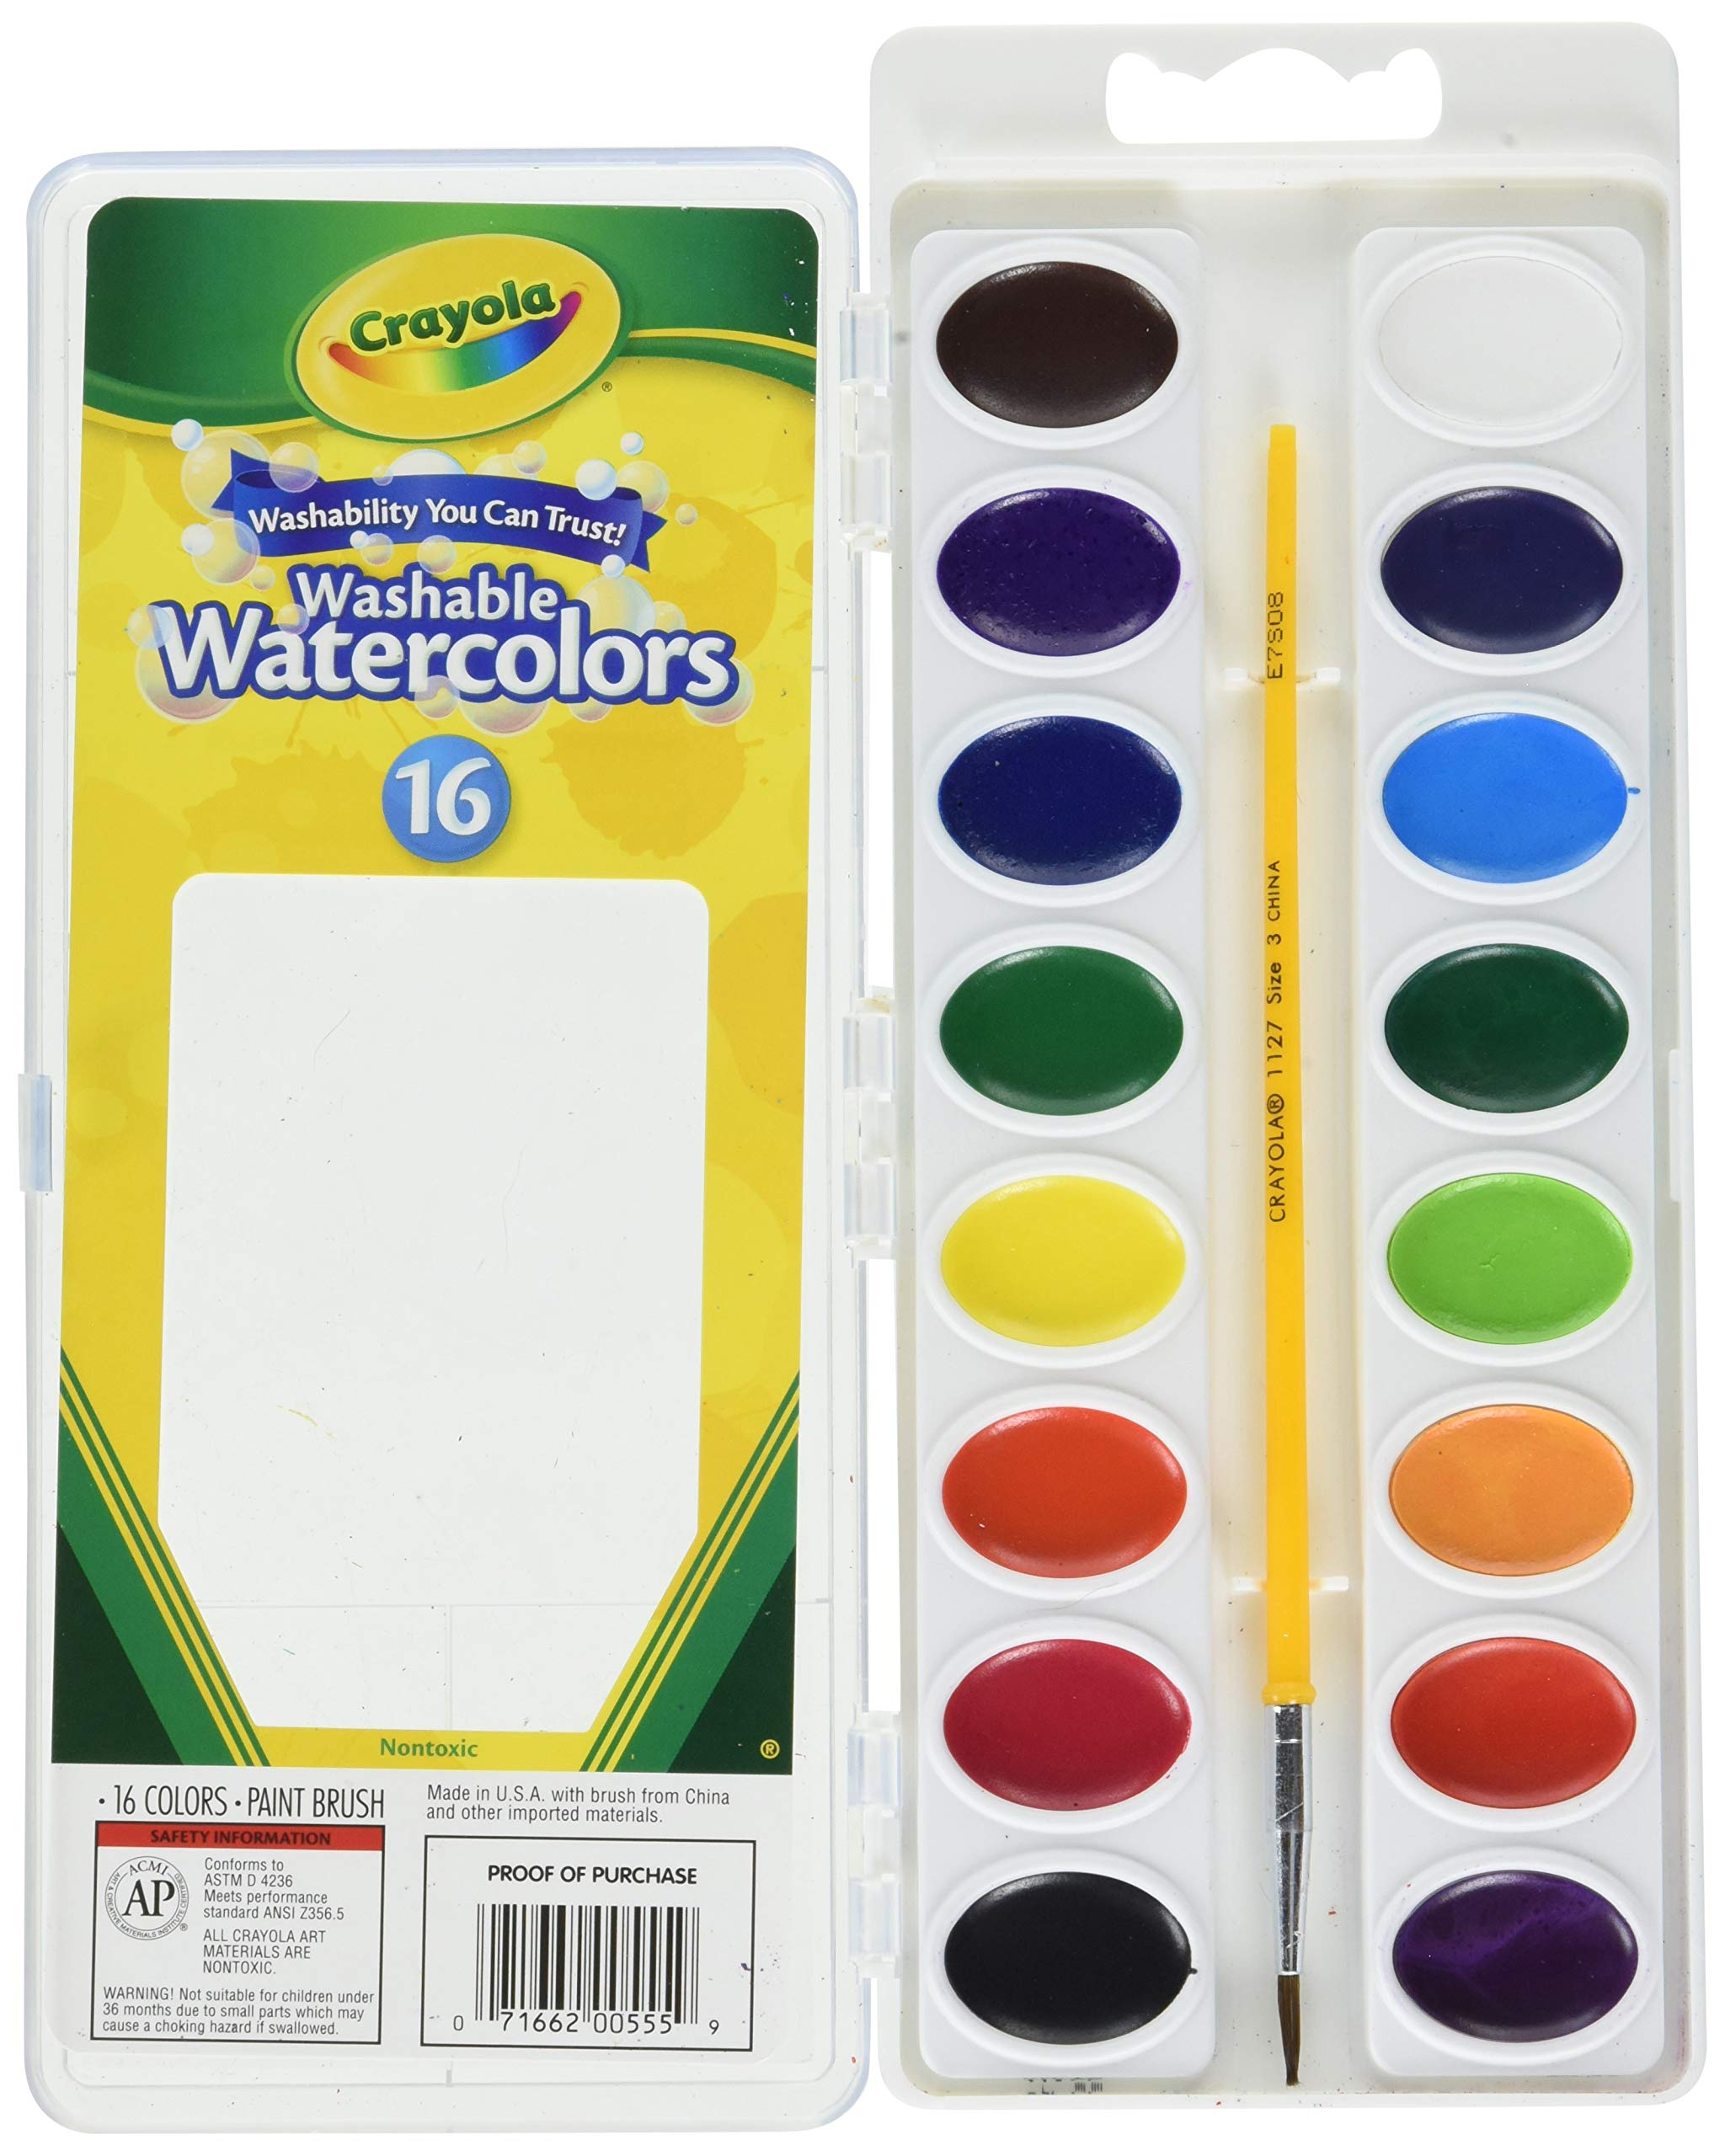 Crayola Washable Watercolors Count Total